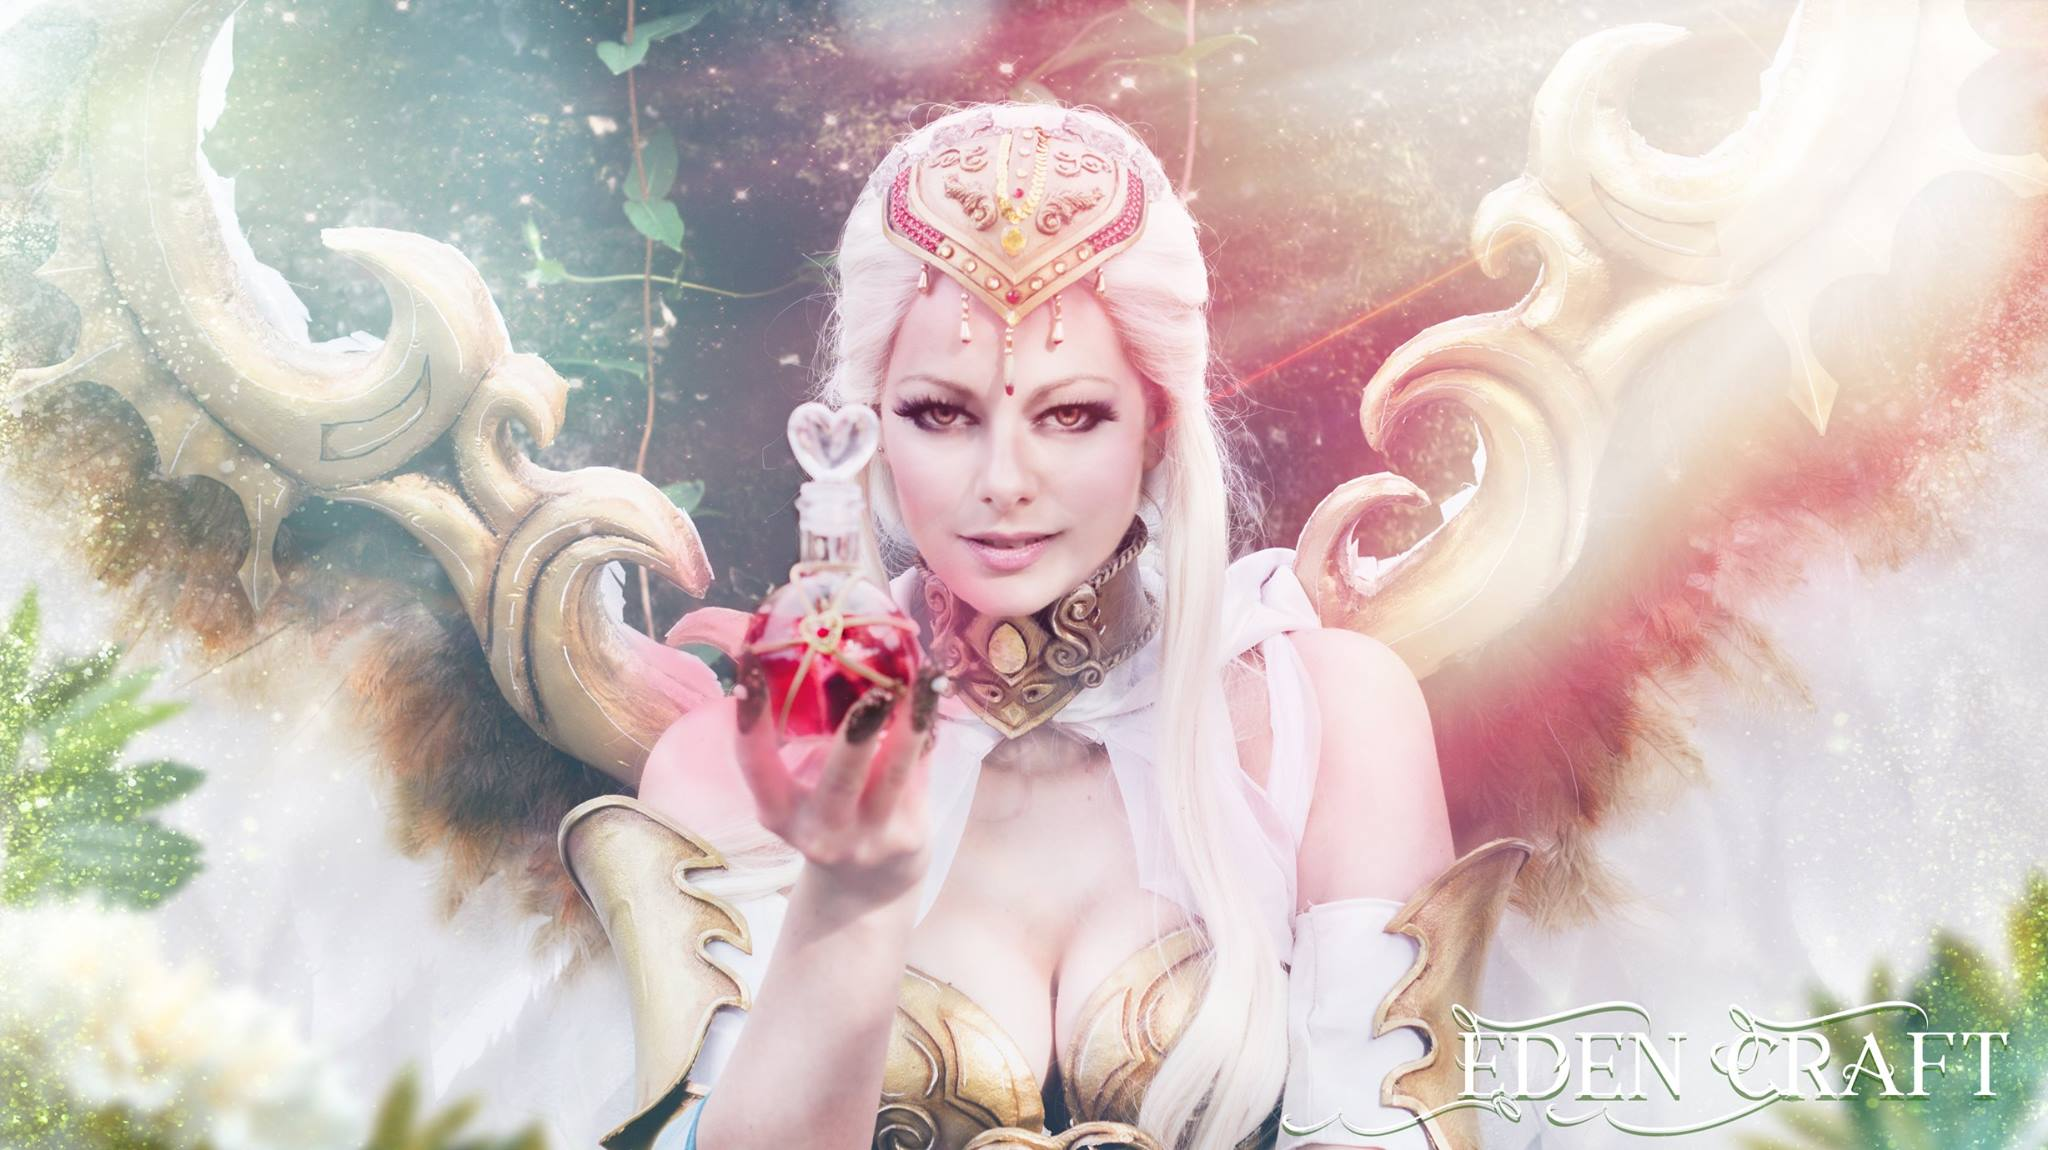 League of Angels 2 cosplay